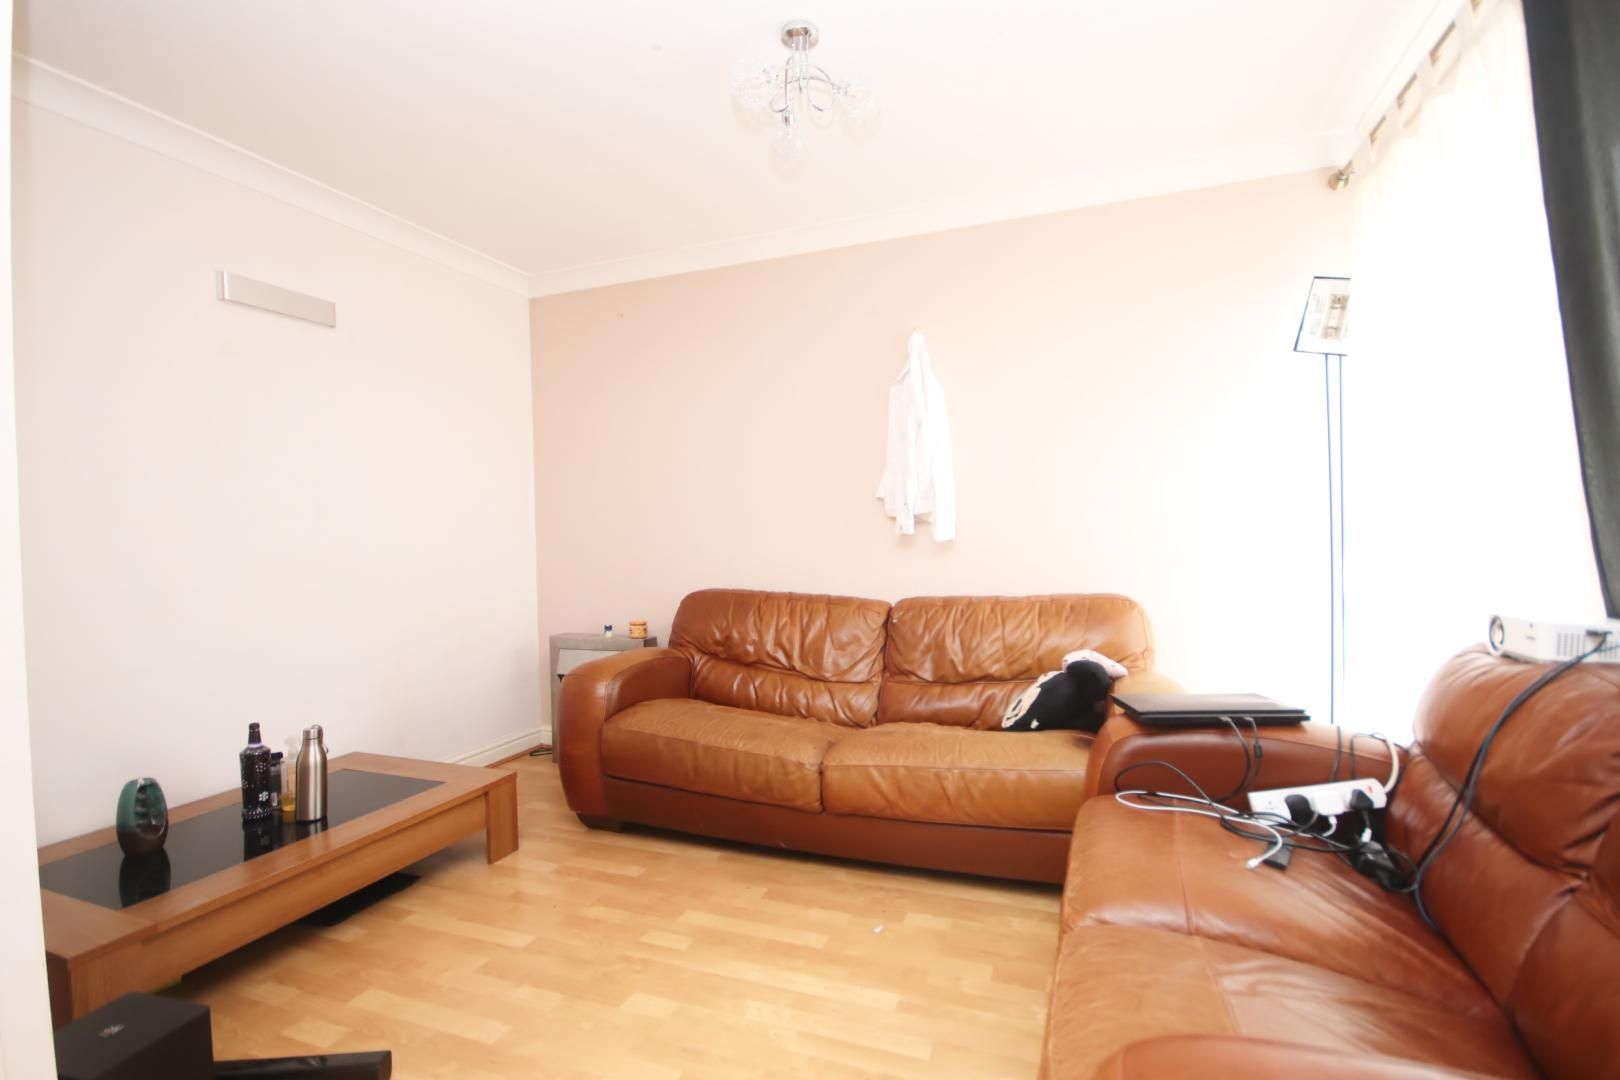 4 bed flat to rent in Torres Square, E14